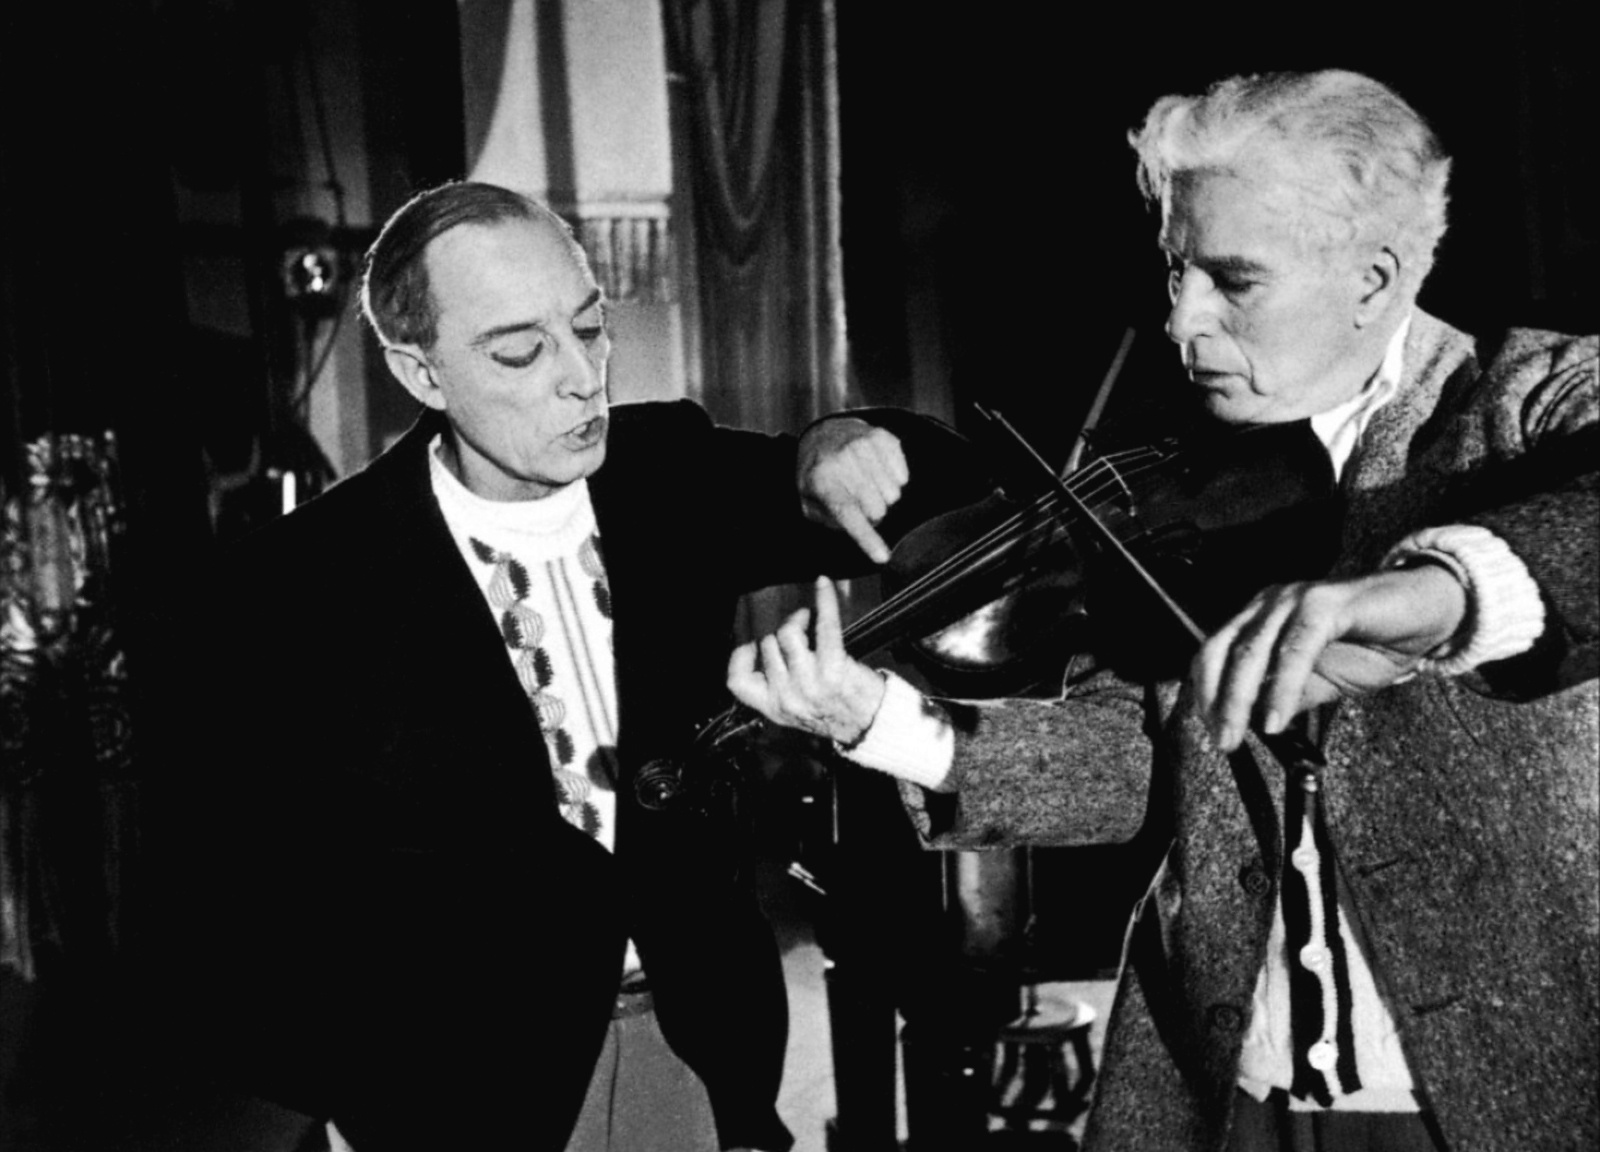 Buster Keaton and Charles Chaplin in 1952's Limelight....my favorite Chaplin movie.